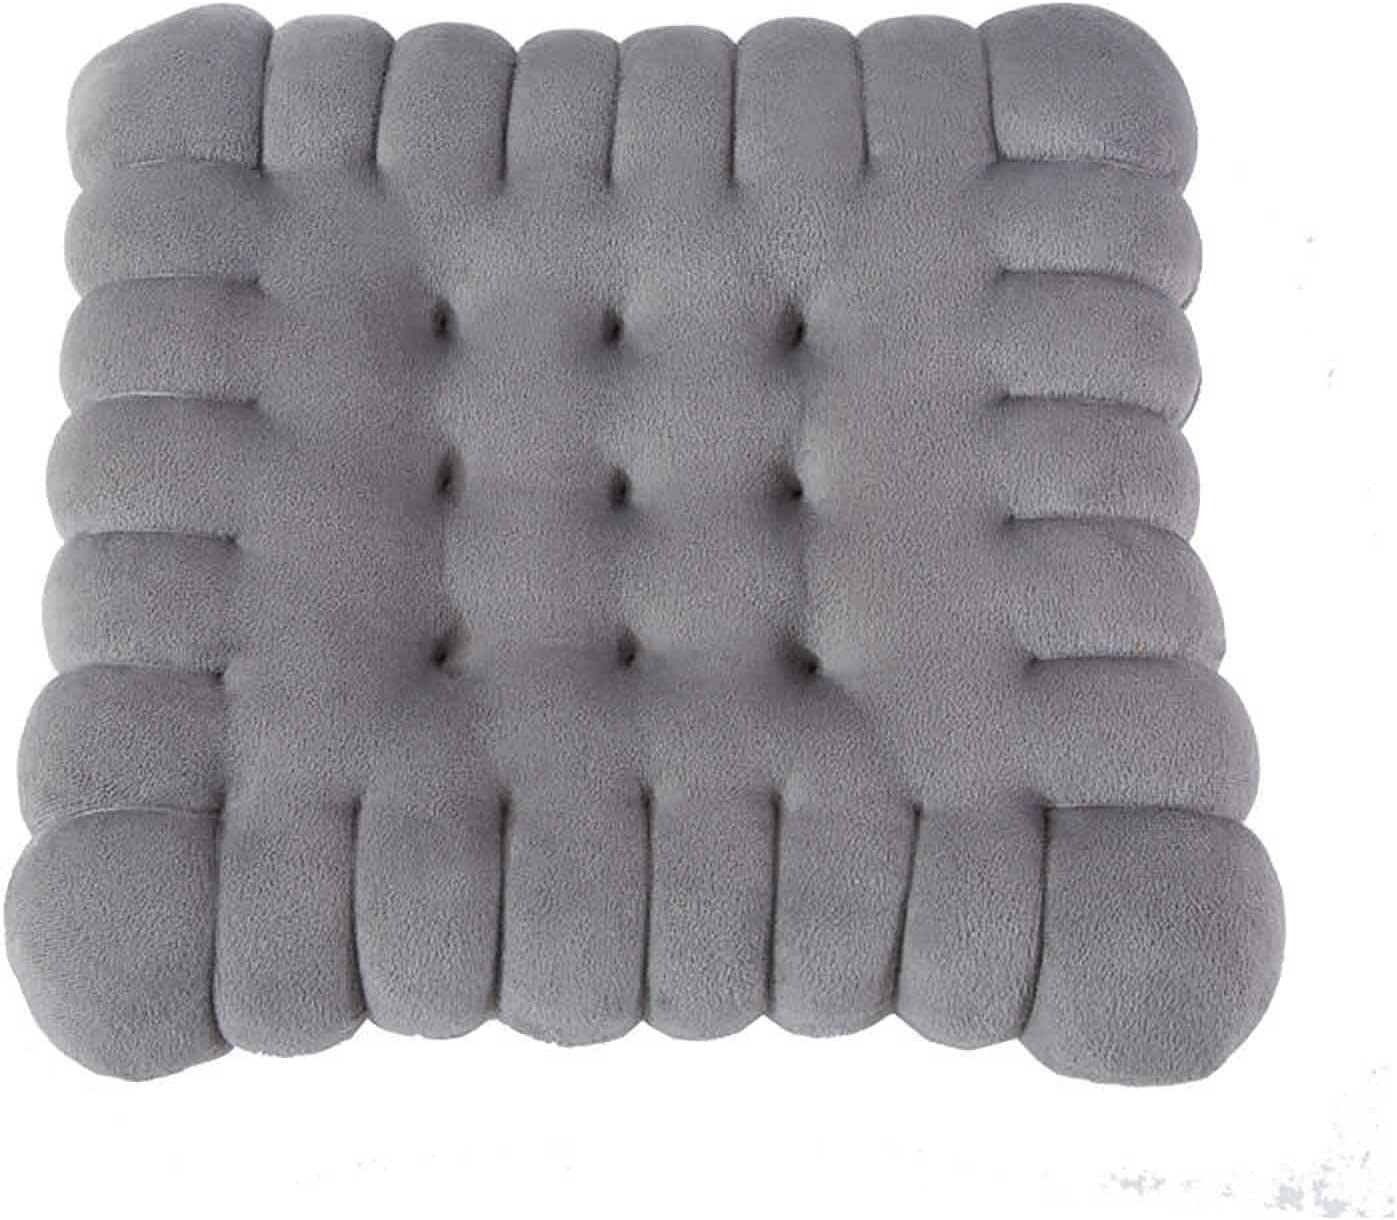 Ranking TOP16 LSJZZ Balcony Thickened Breathable Pad C Pillow Discount is also underway Chair Cushions